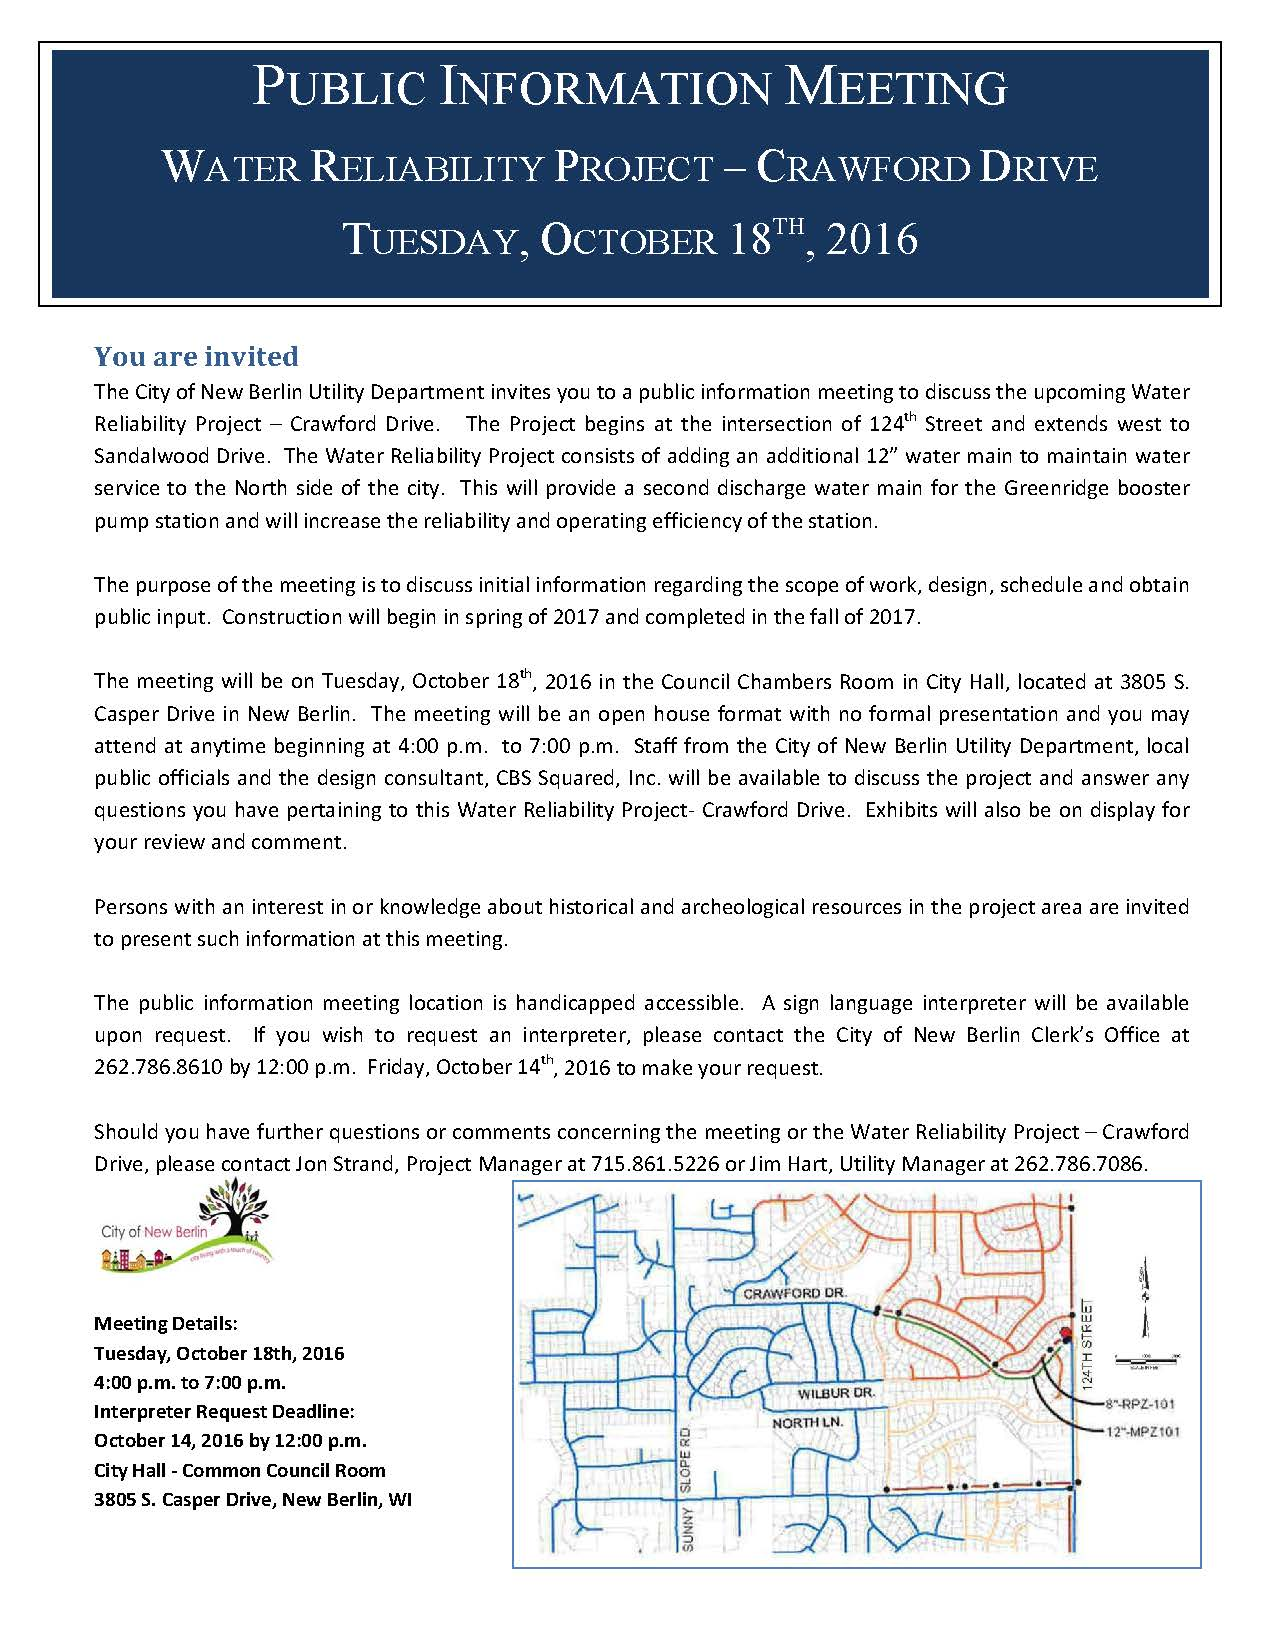 Crawford Drive Water Reliability Informational Meeting Letter October 18, 2016